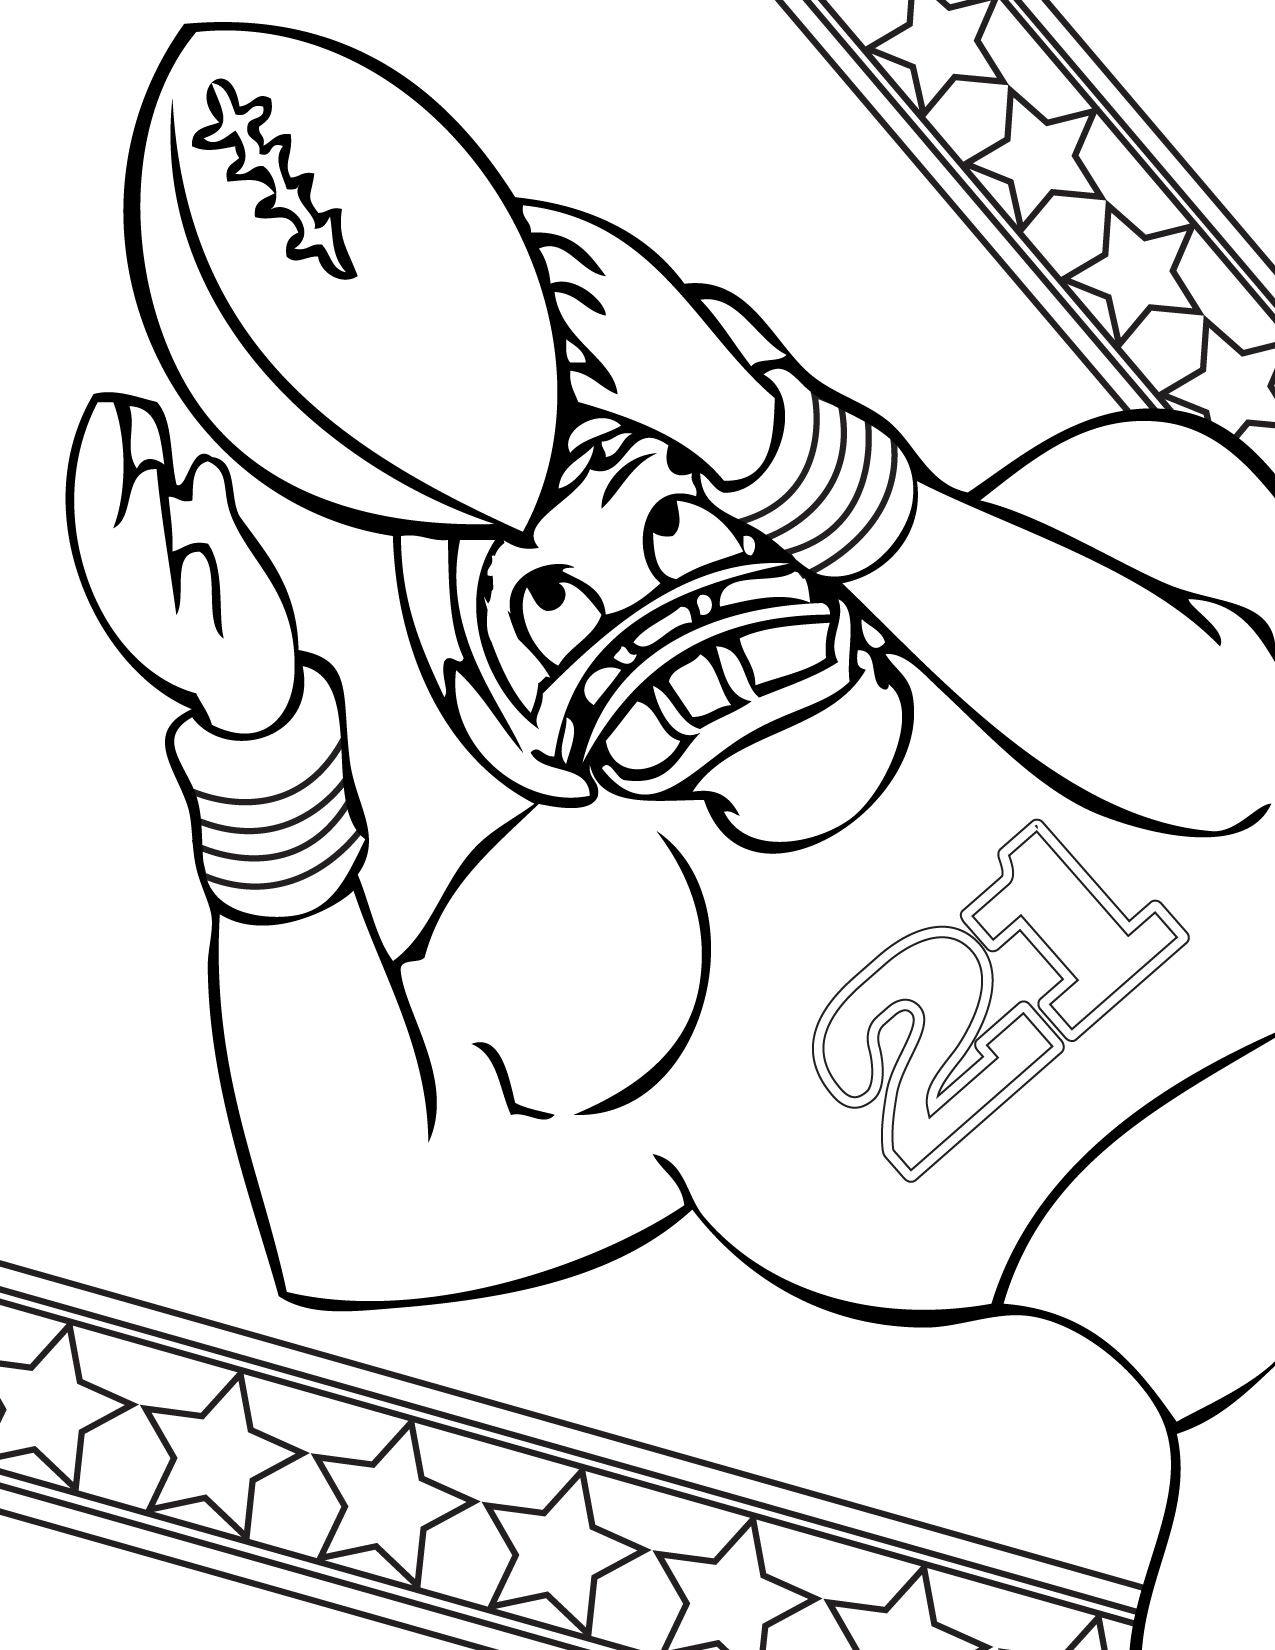 ... Sports Coloring Pages | Coloring Pages. Football